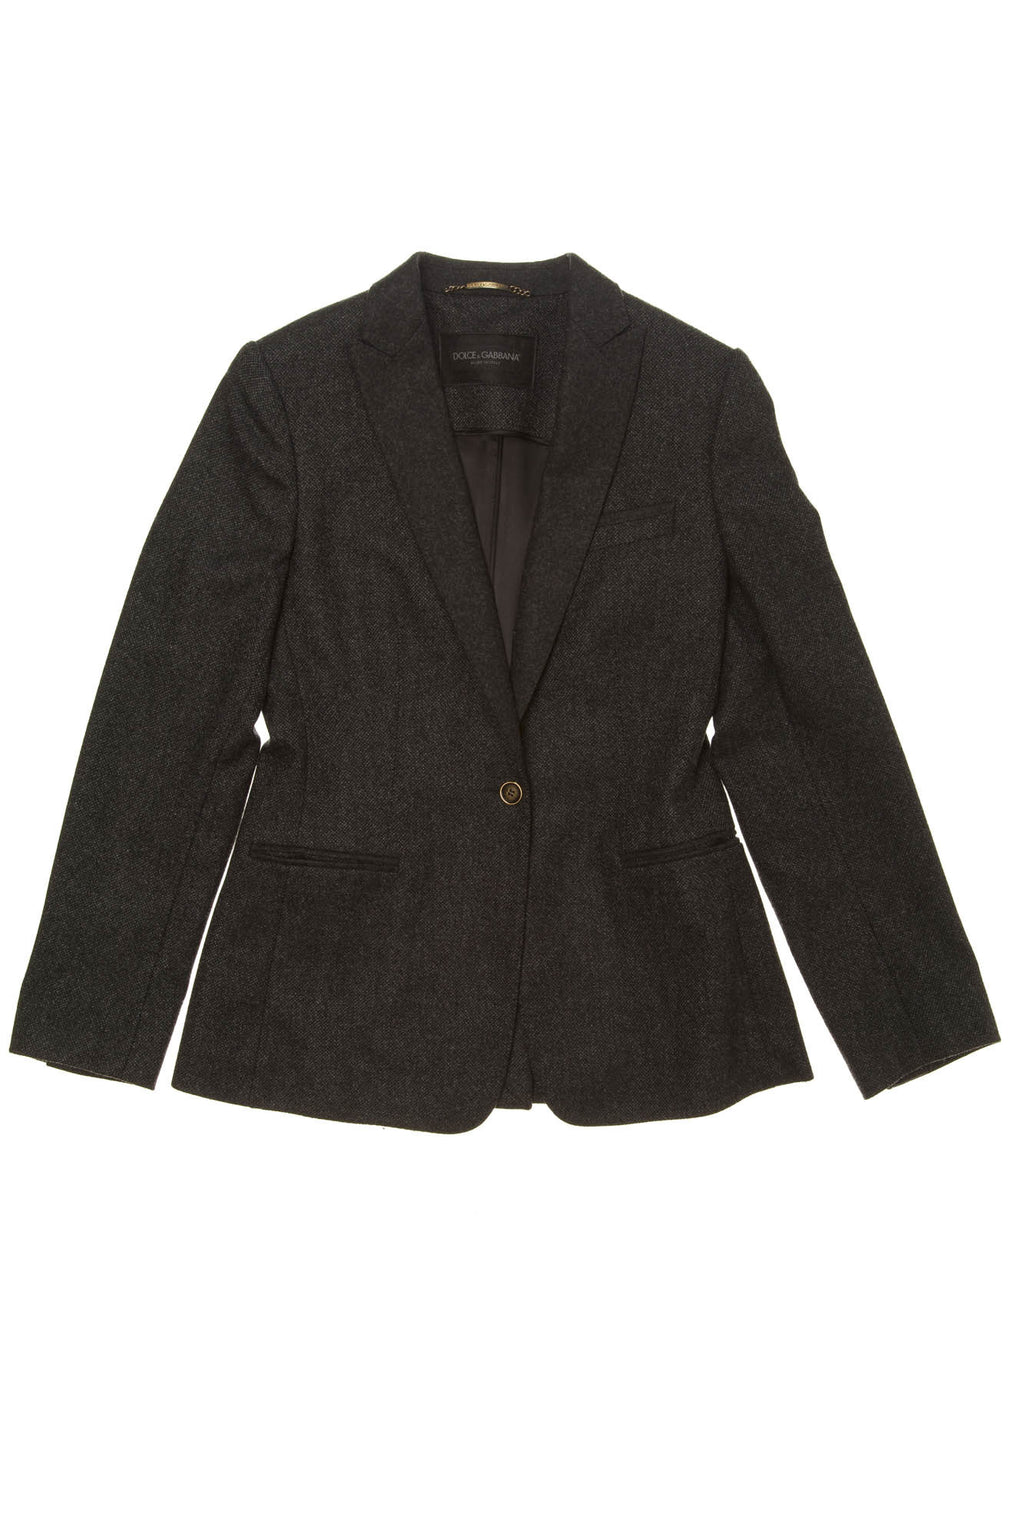 Dolce & Gabbana - Dark Gray Blazer - IT 42